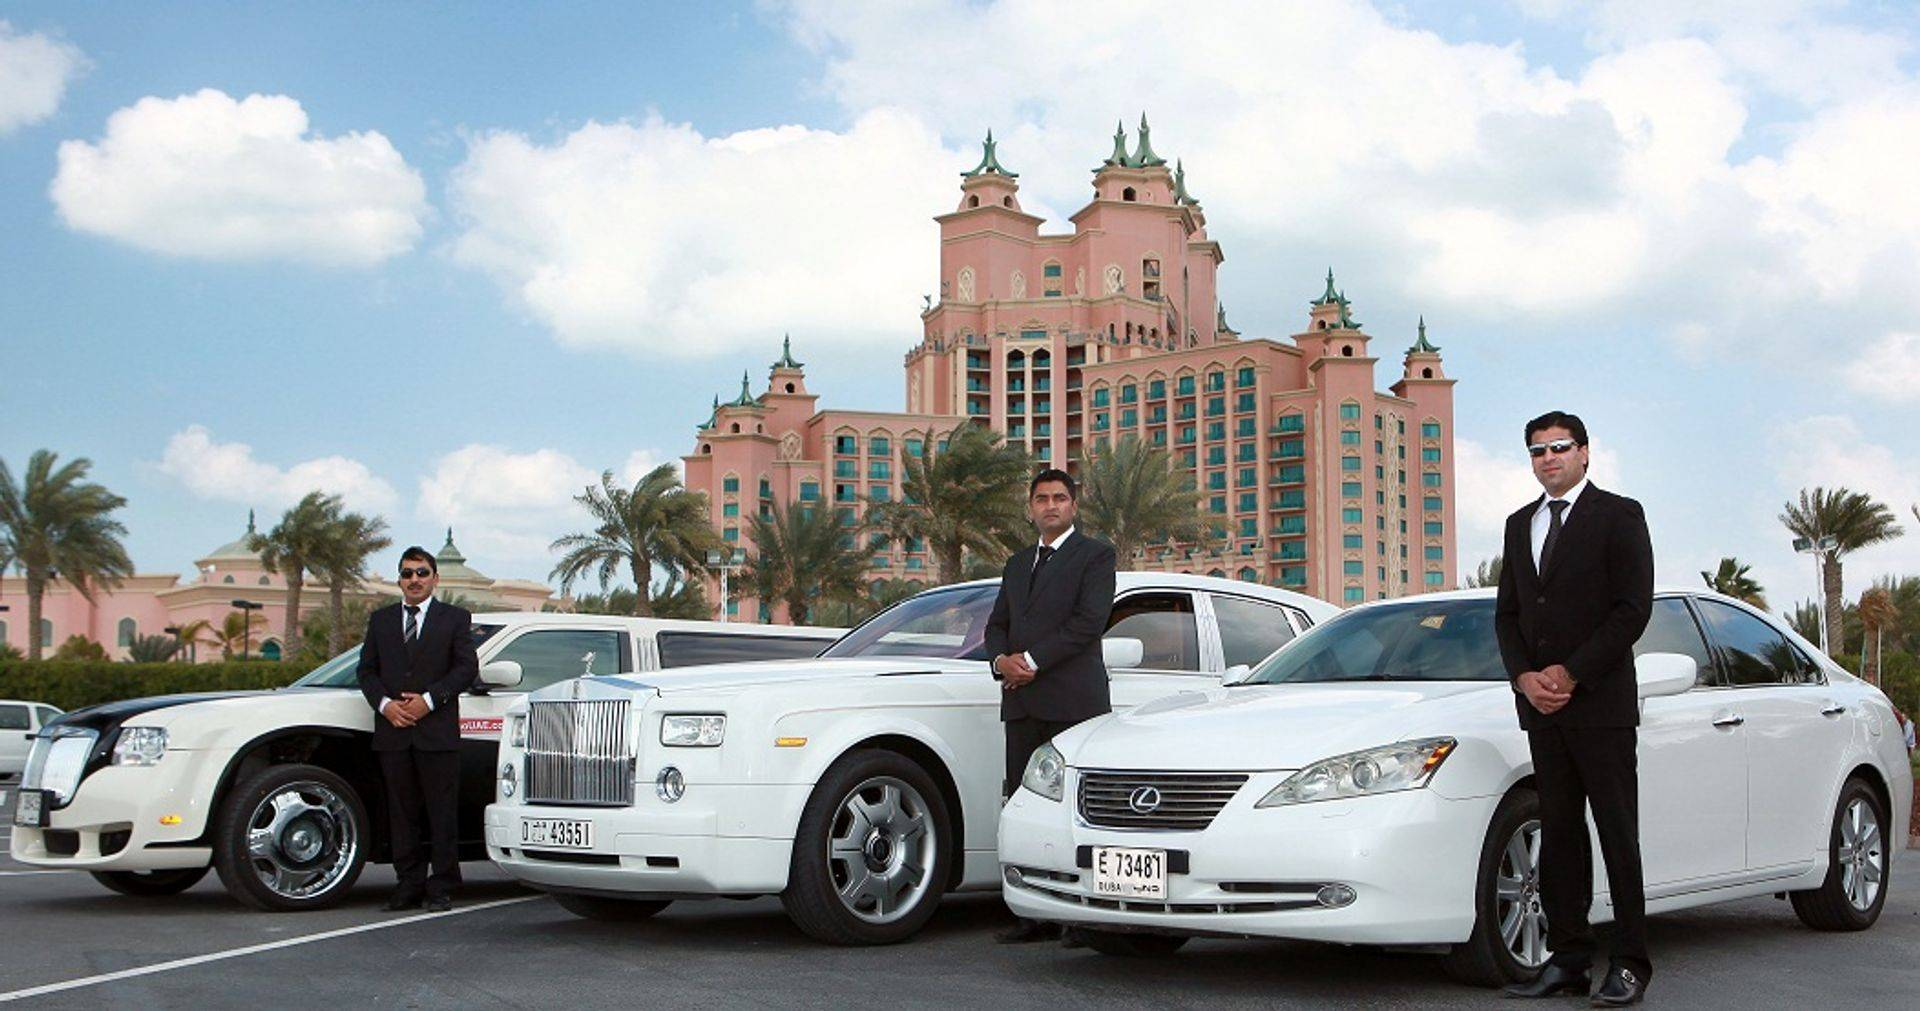 Car Hire In Dubai With Driver